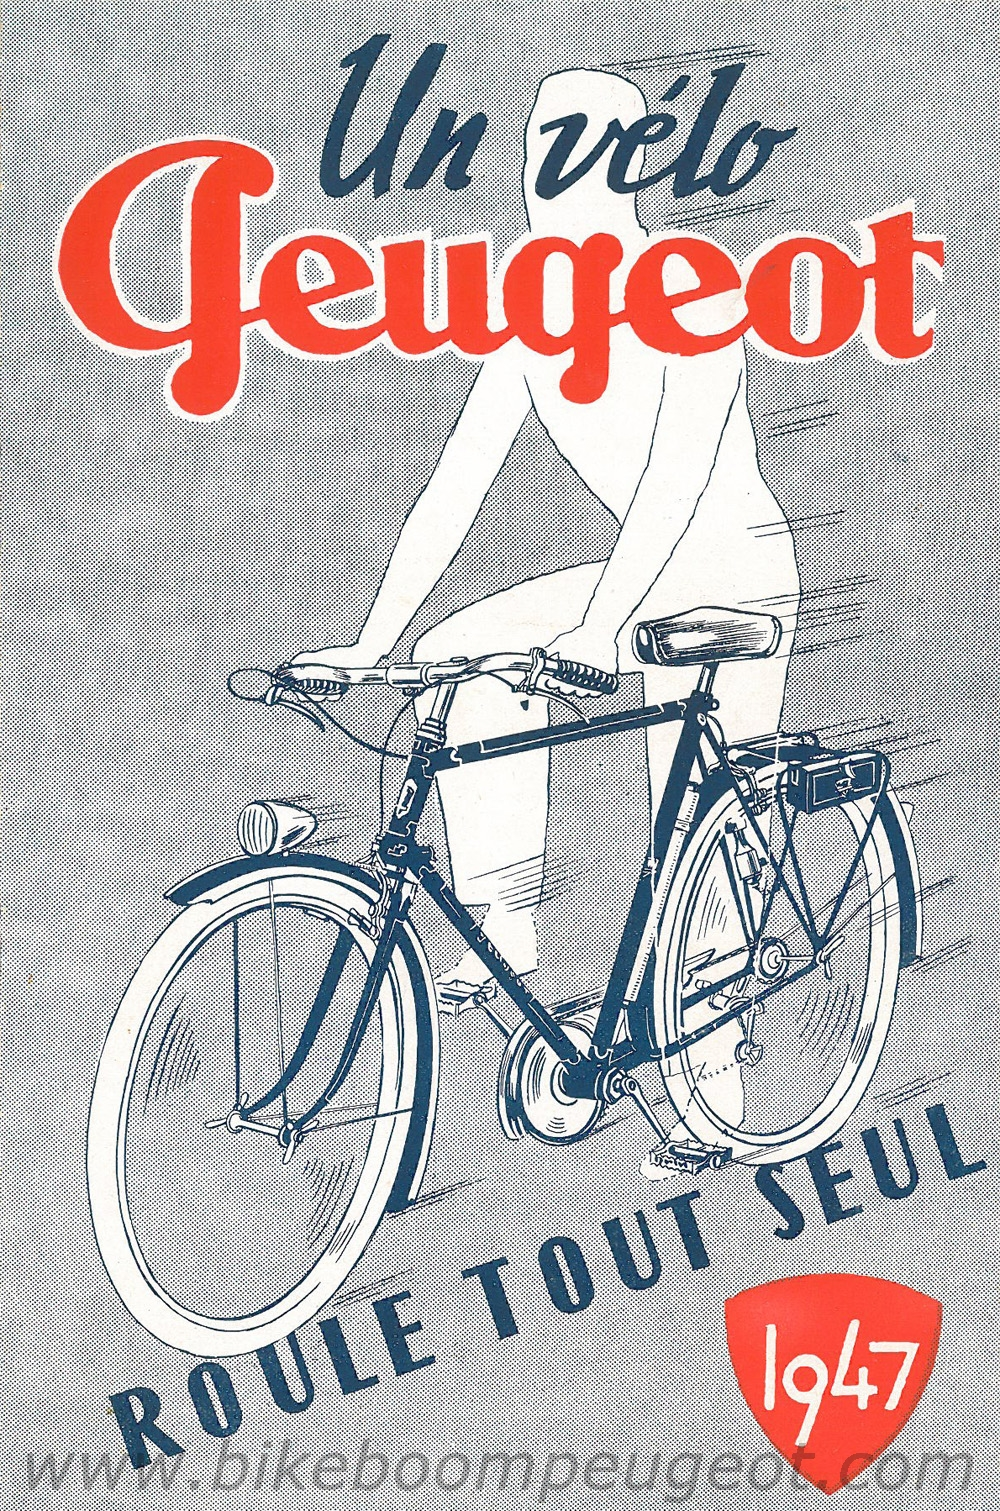 1947 Peugeot Bicycle Catalogue | Restoring Vintage Bicycles